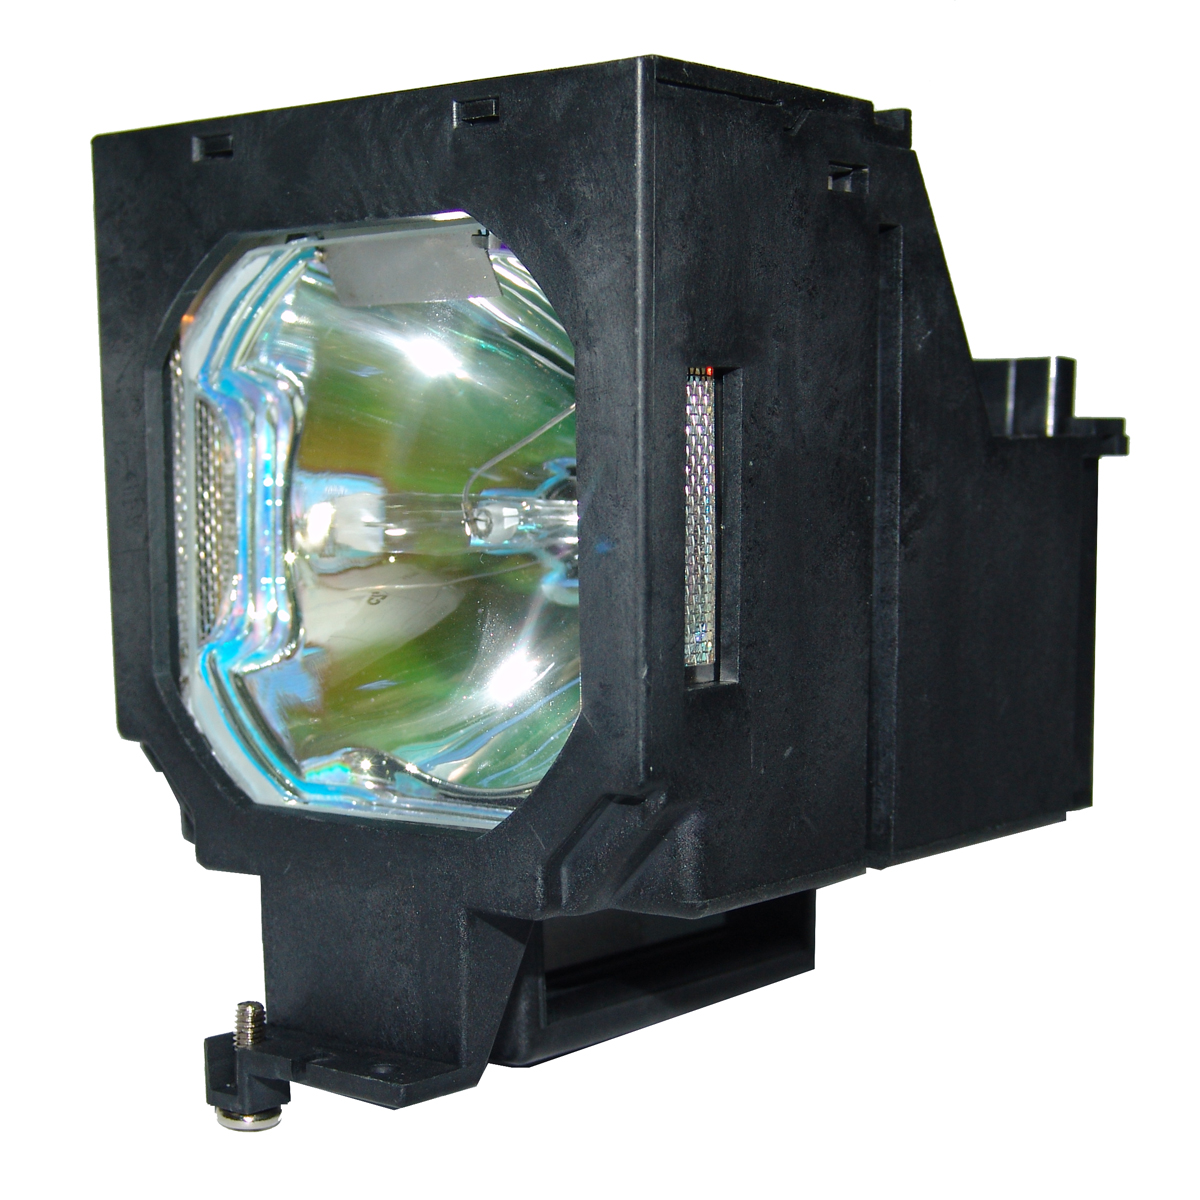 POA-LMP147 POALMP147 LMP147 610-350-9051 for SANYO PLC-HF15000L Projector Bulb Lamp With Housing lamp housing for sanyo 610 3252957 6103252957 projector dlp lcd bulb